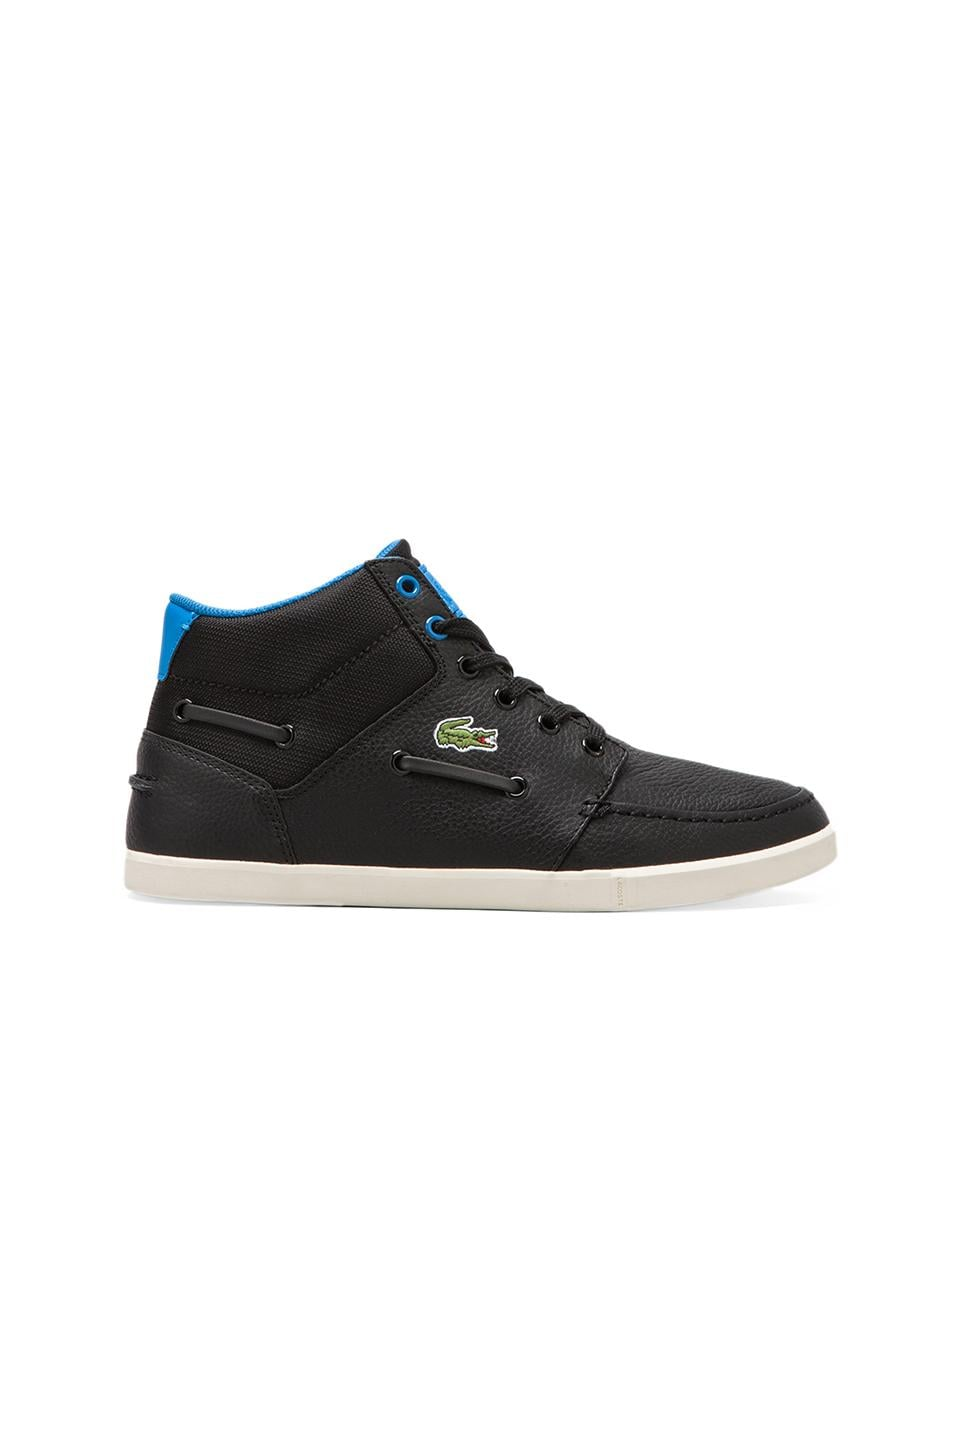 Lacoste LIVE Crosier Sail Mid in Black/Blue